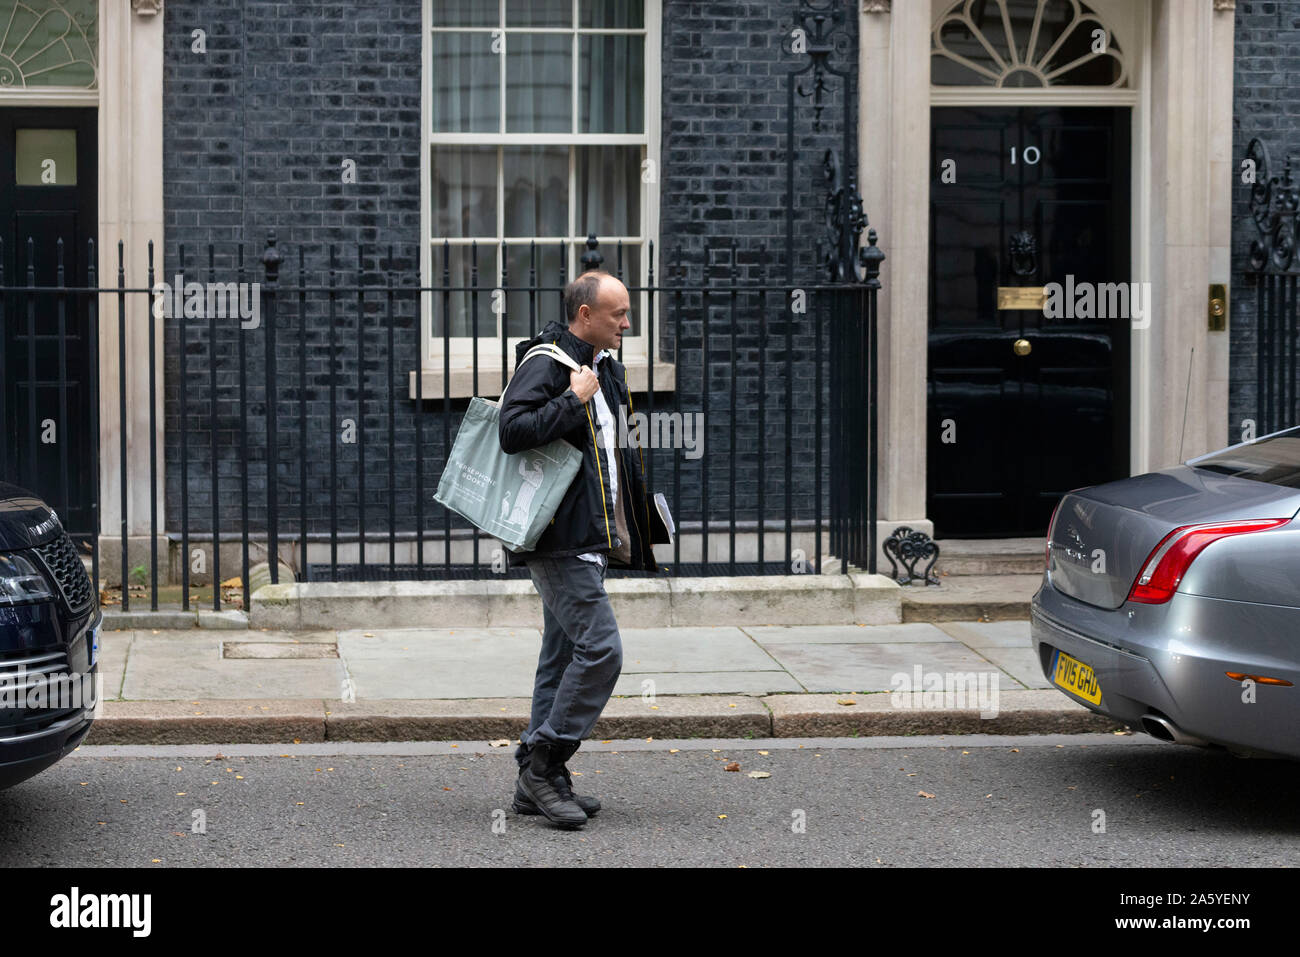 London,UK 23rd October 2019: Dominic Cummings makes his way to PM Johnsons car in  Downing Street ahead of House of Commons for PMQ's. Claire Doherty/Alamy Live News Stock Photo